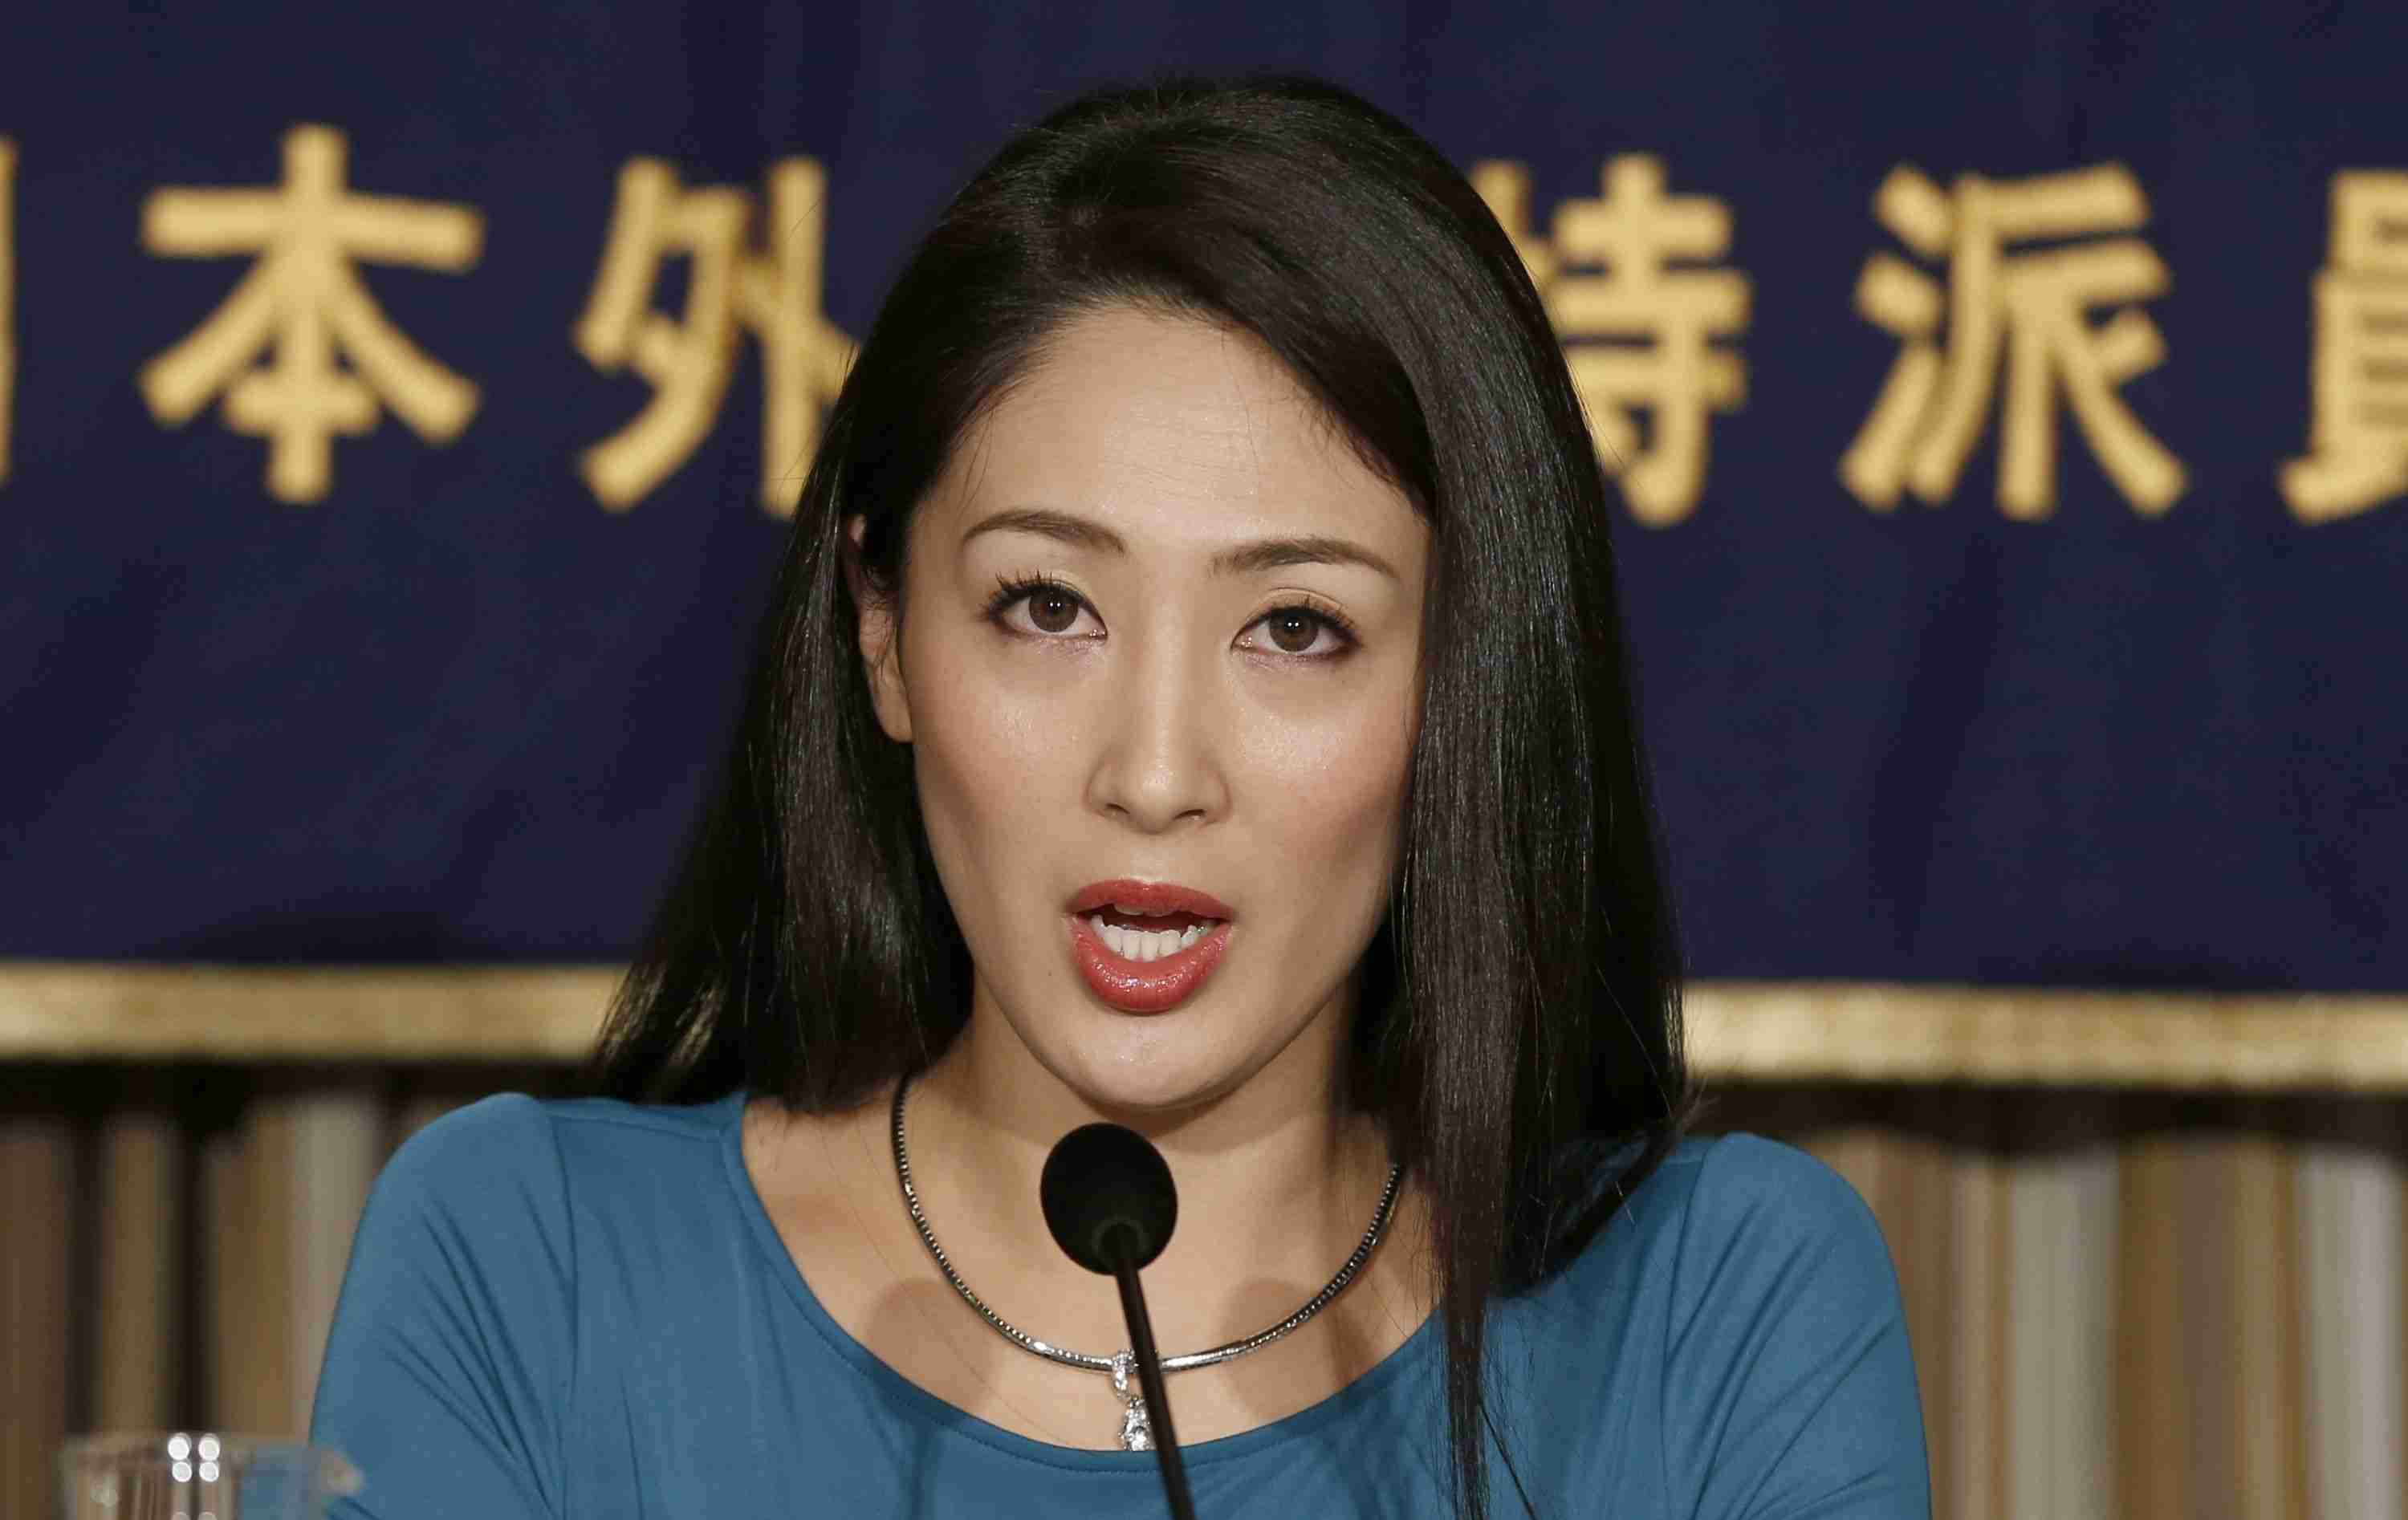 Japanese beauty queen banned from ceremony | Fox News